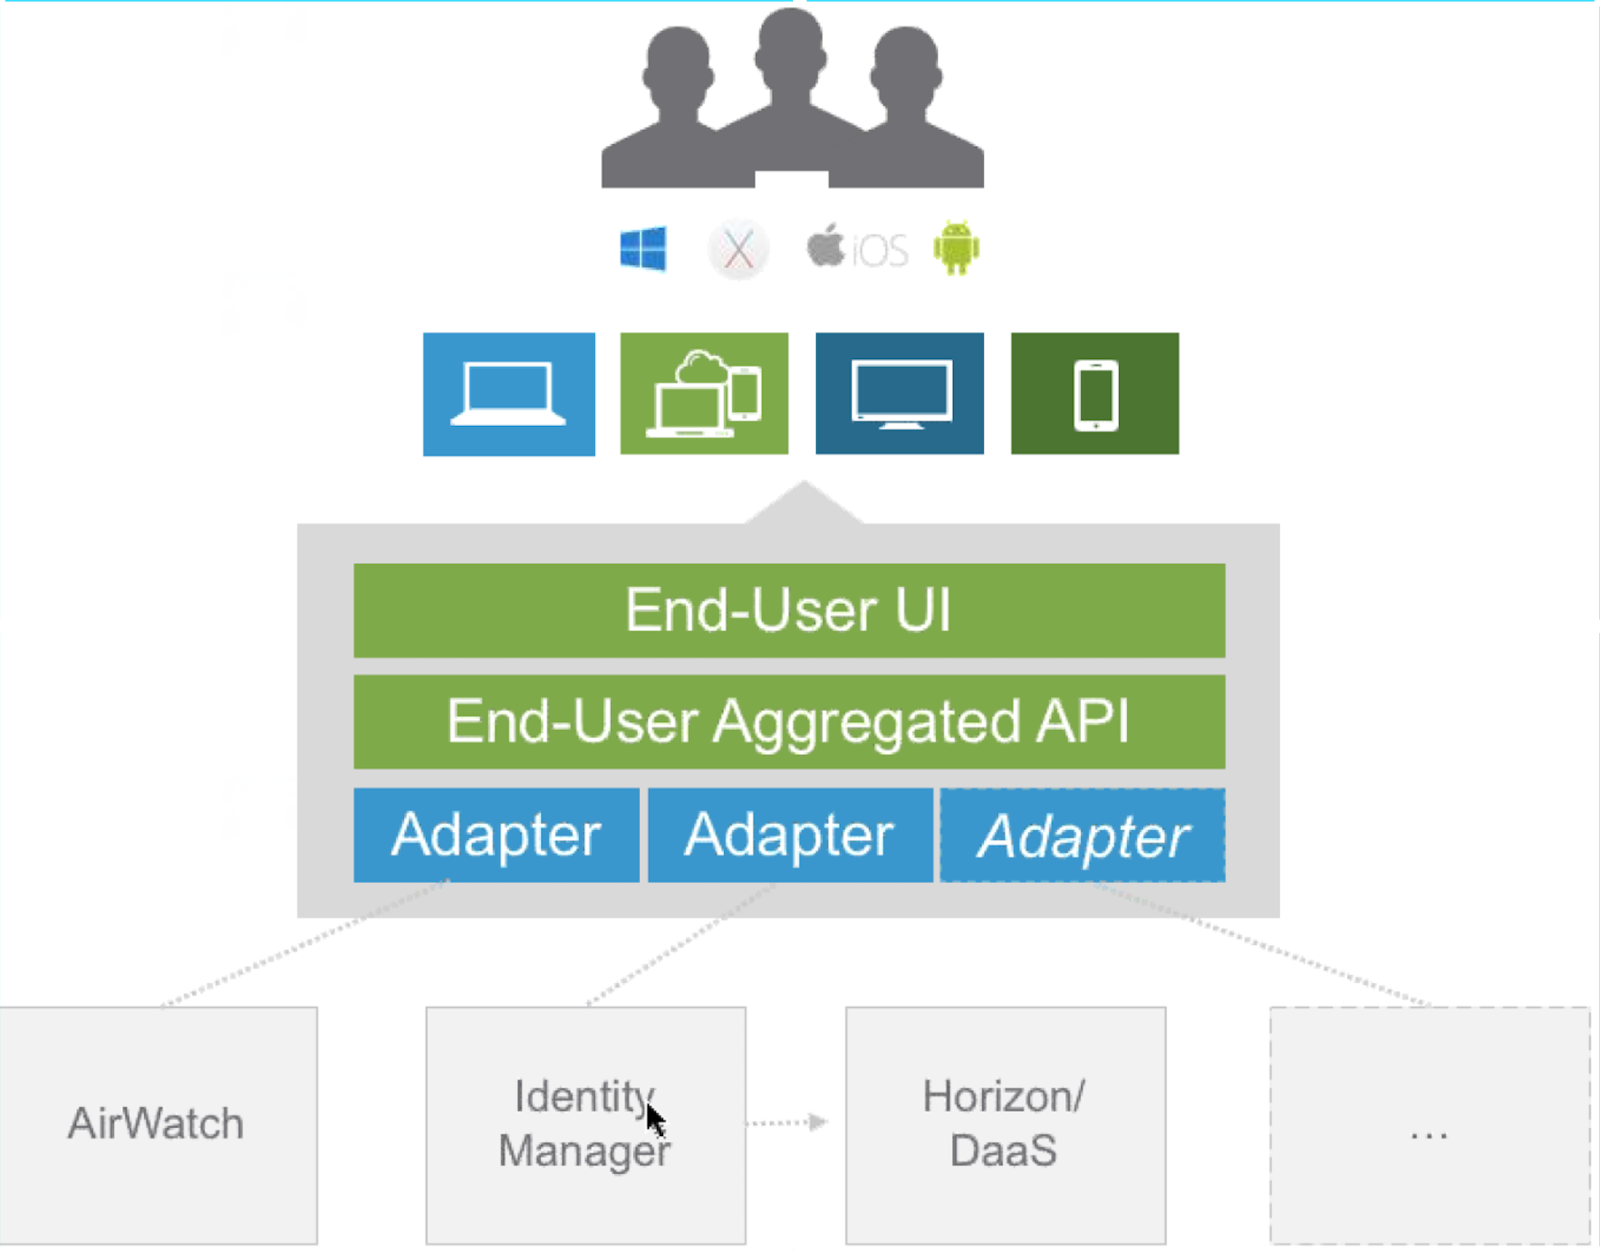 VMware Workspace ONE explained - robbeekmans net